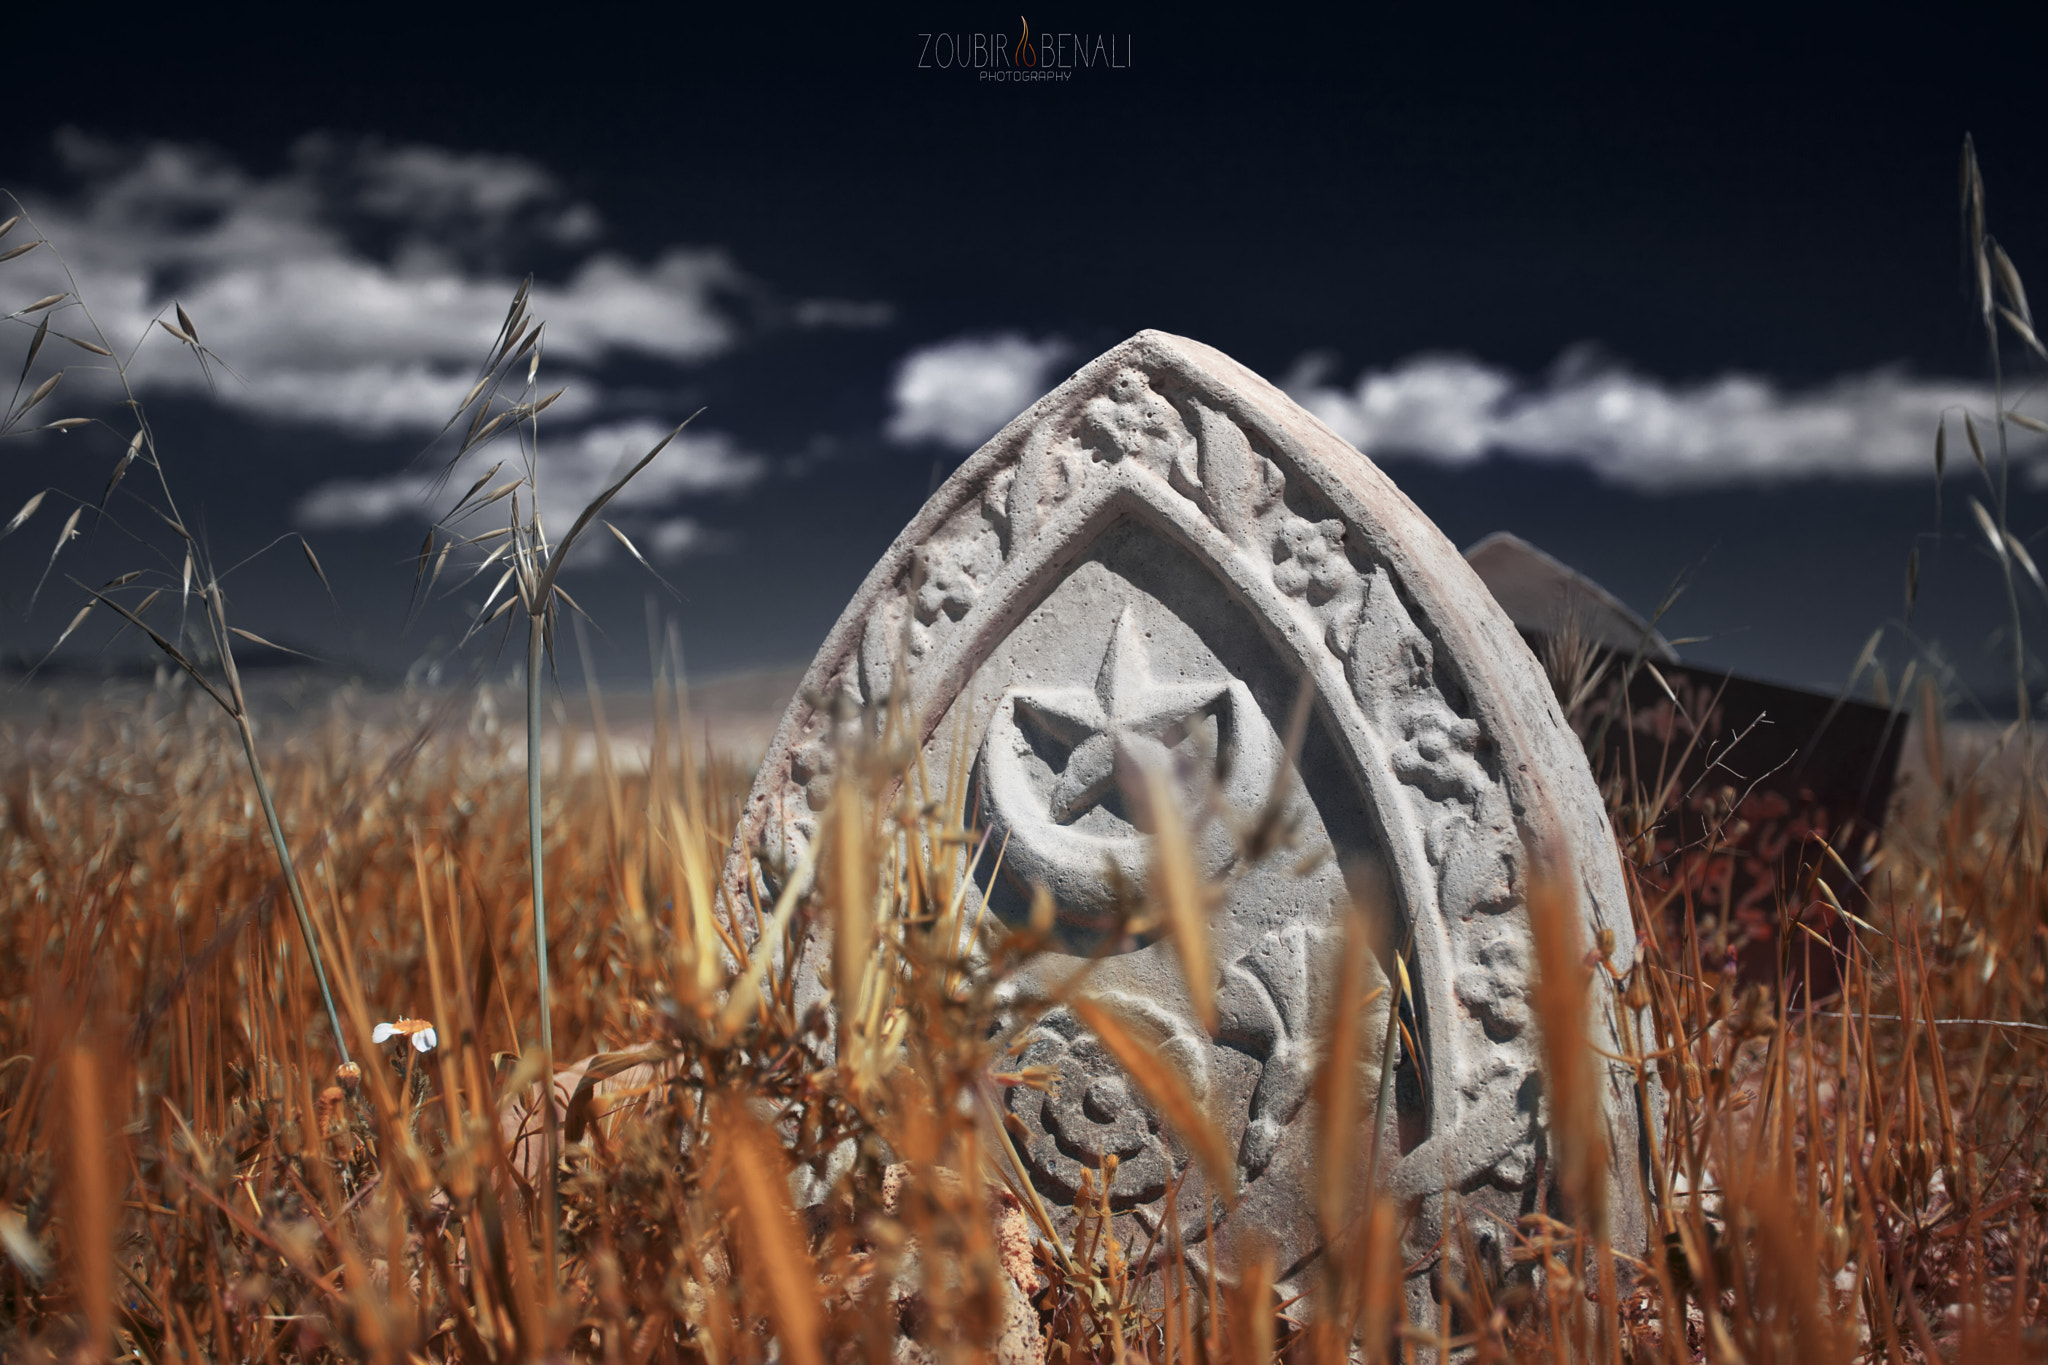 Photograph After Death by Zoubir BENALI on 500px